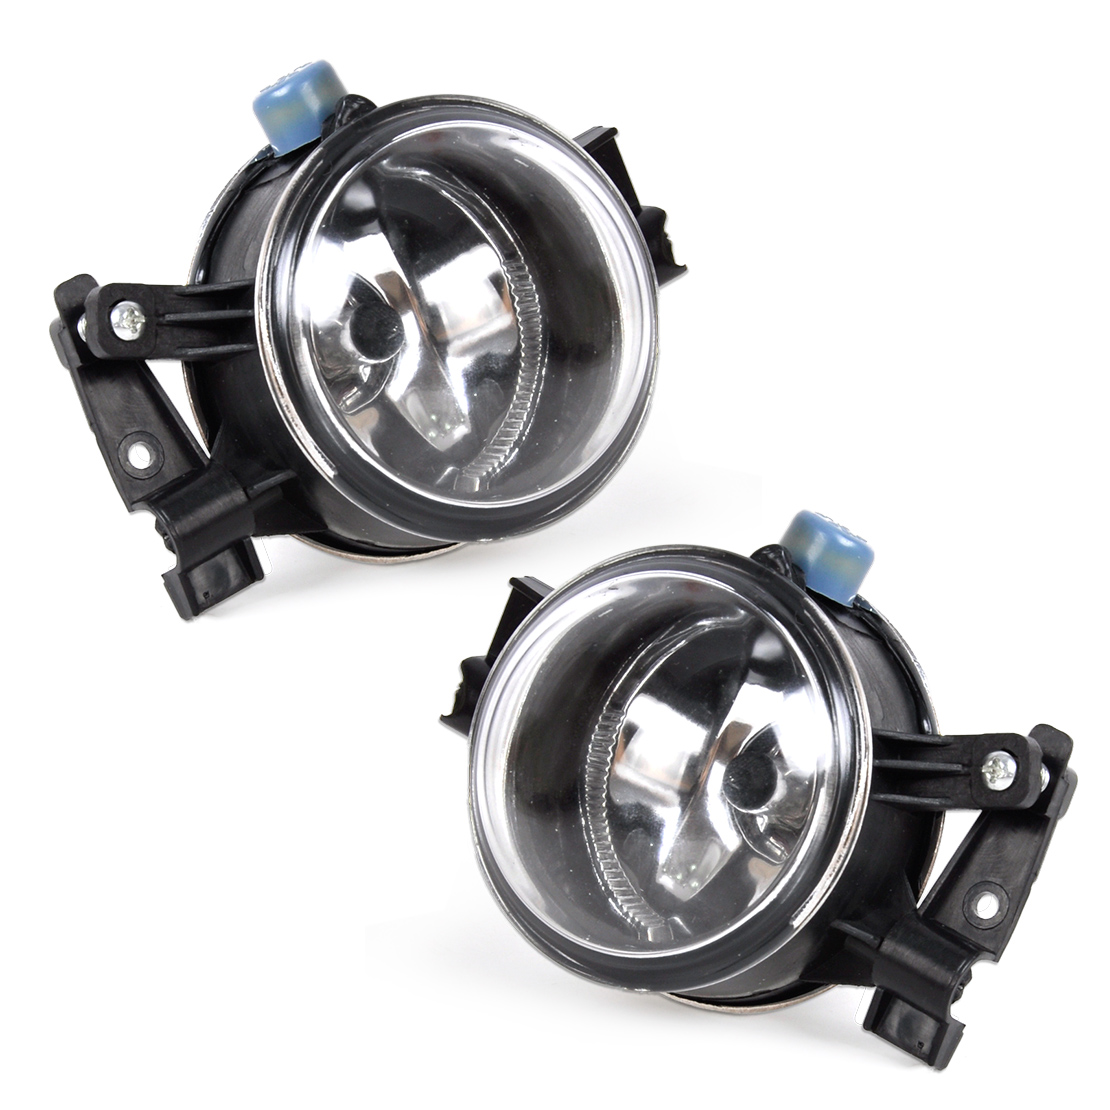 beler 3M51-15K201-AA 3M51-15K202-AA 1 Pair Right Left Fog Lights Lamp 12V 55W for Ford Focus 2005 2006 2007